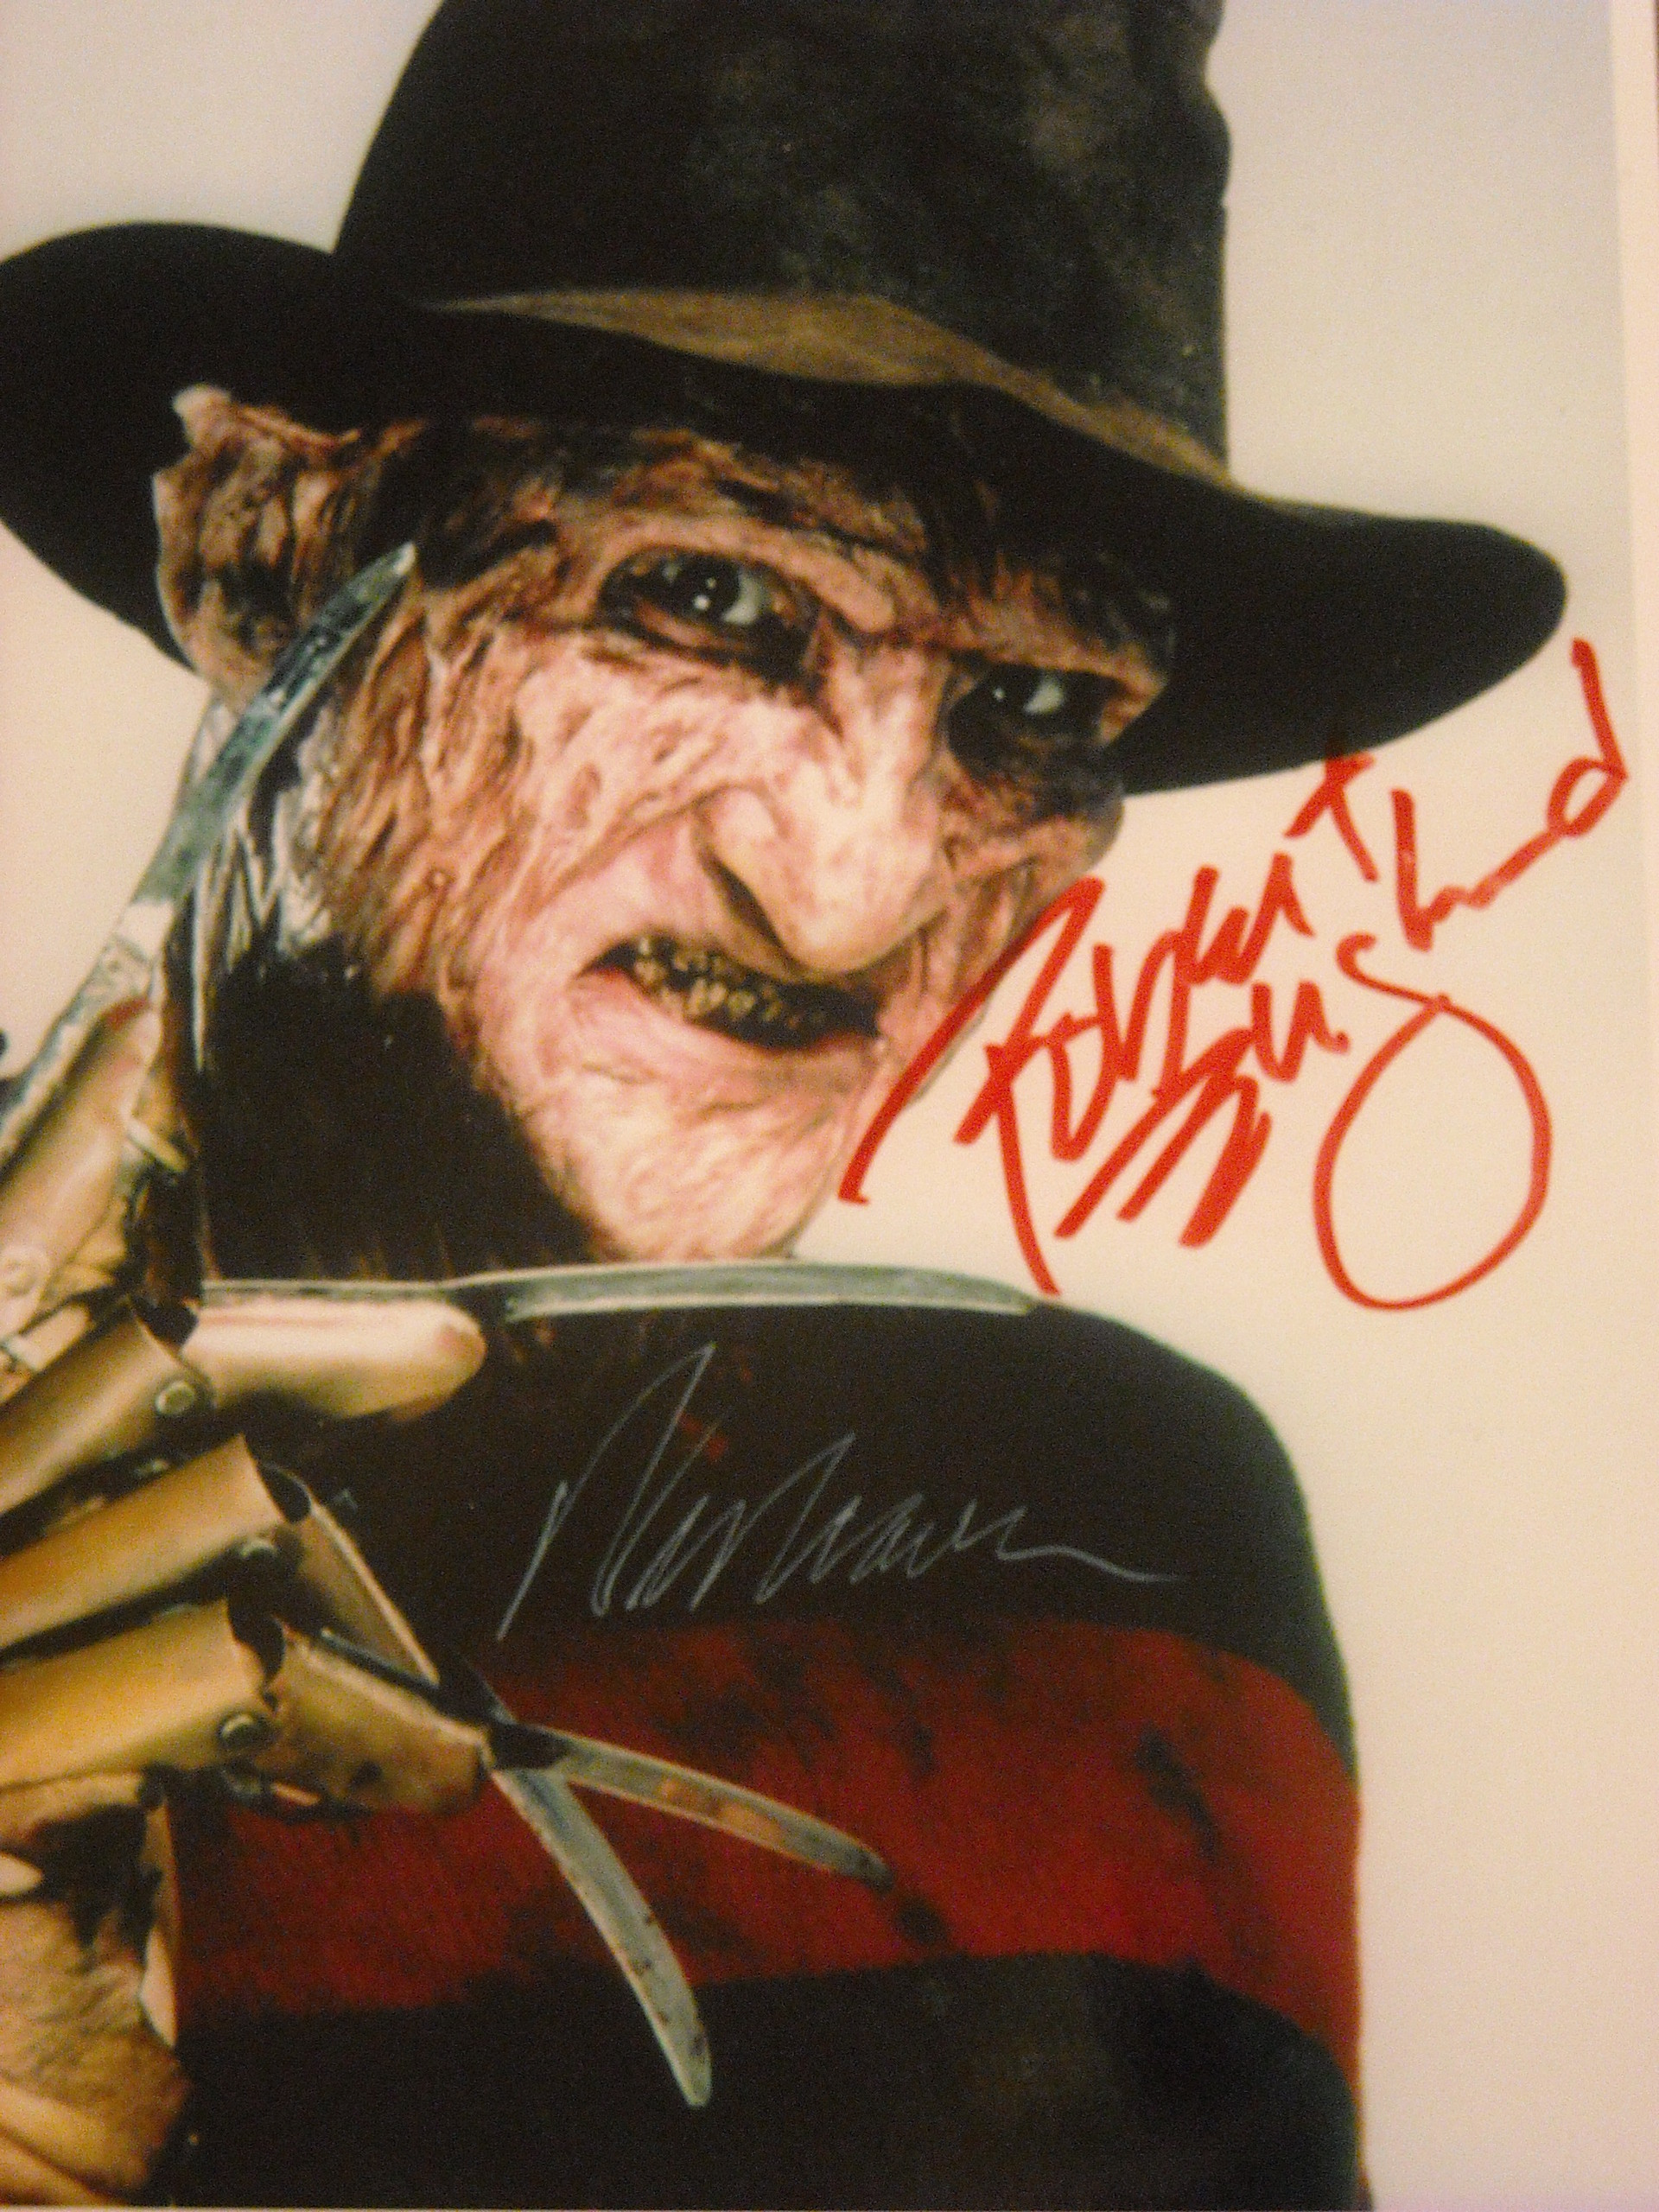 Horror movies freddy krueger autographed photo